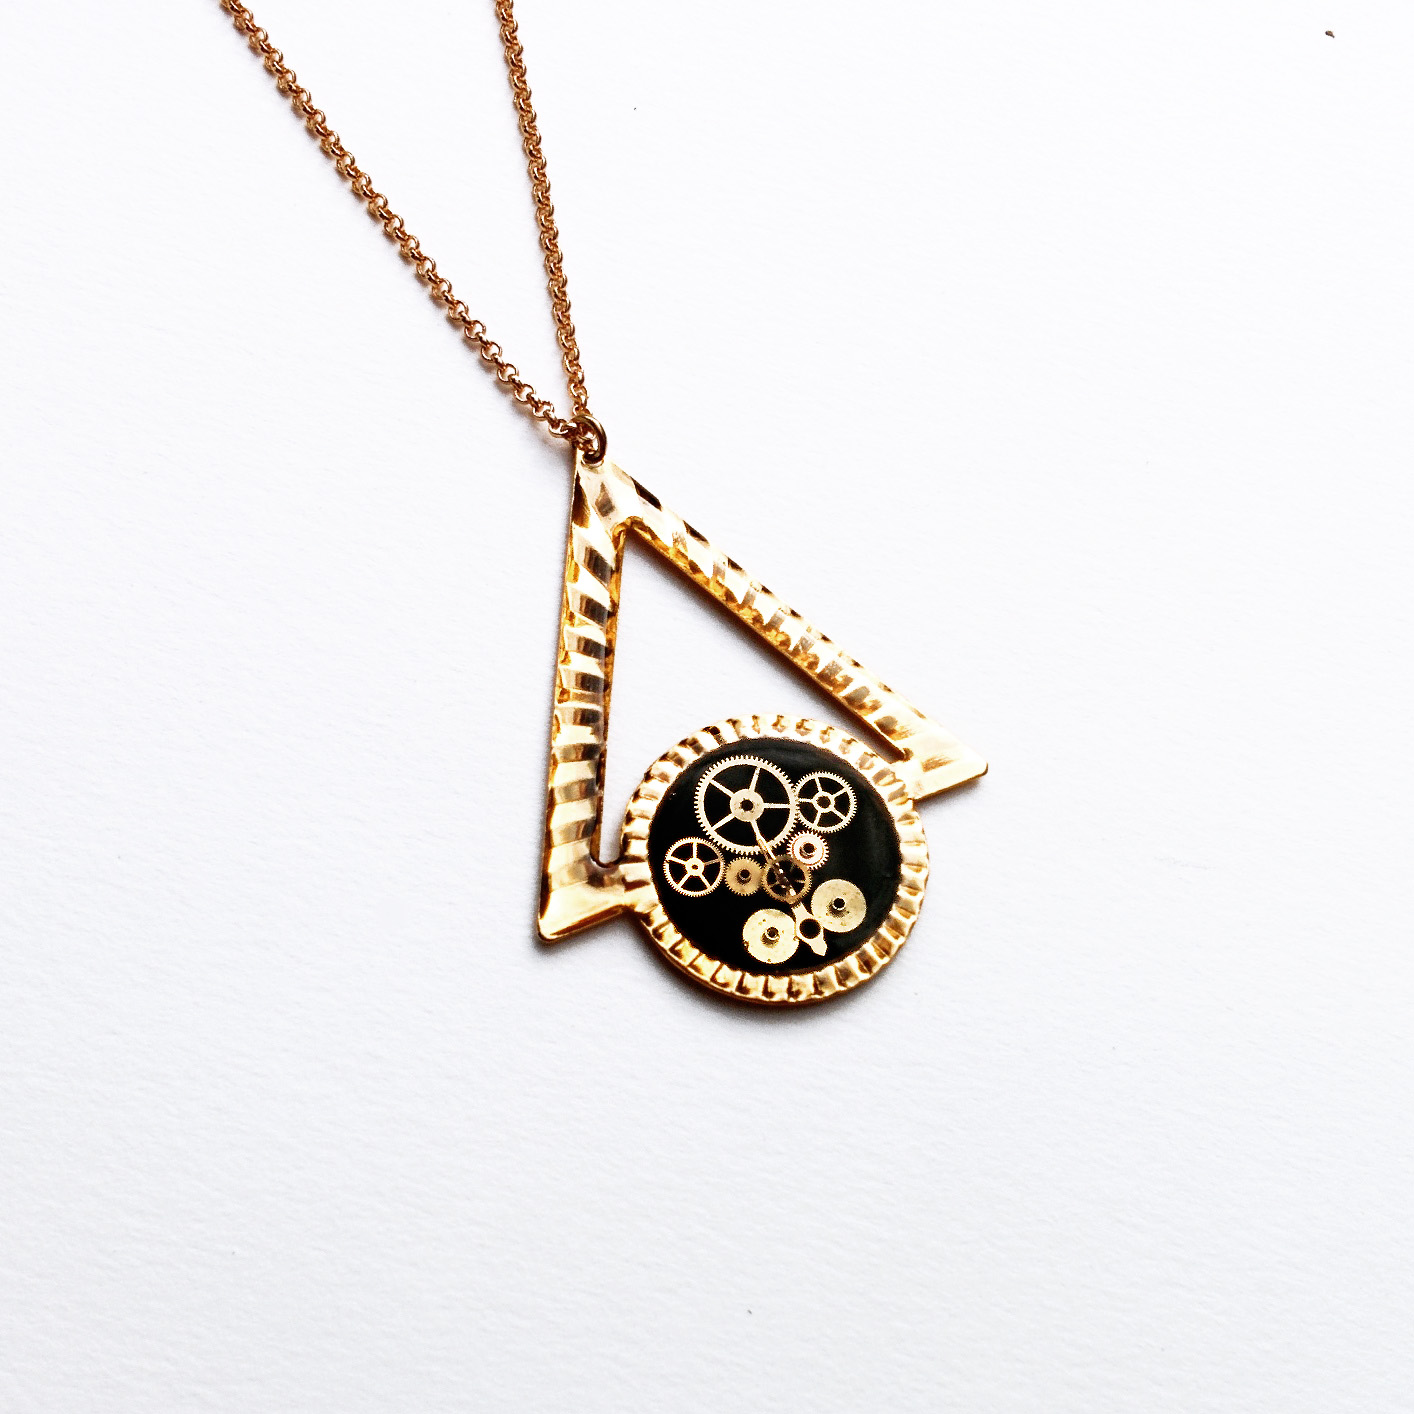 One of a kind watch part pendant made from an up cycled single earring.